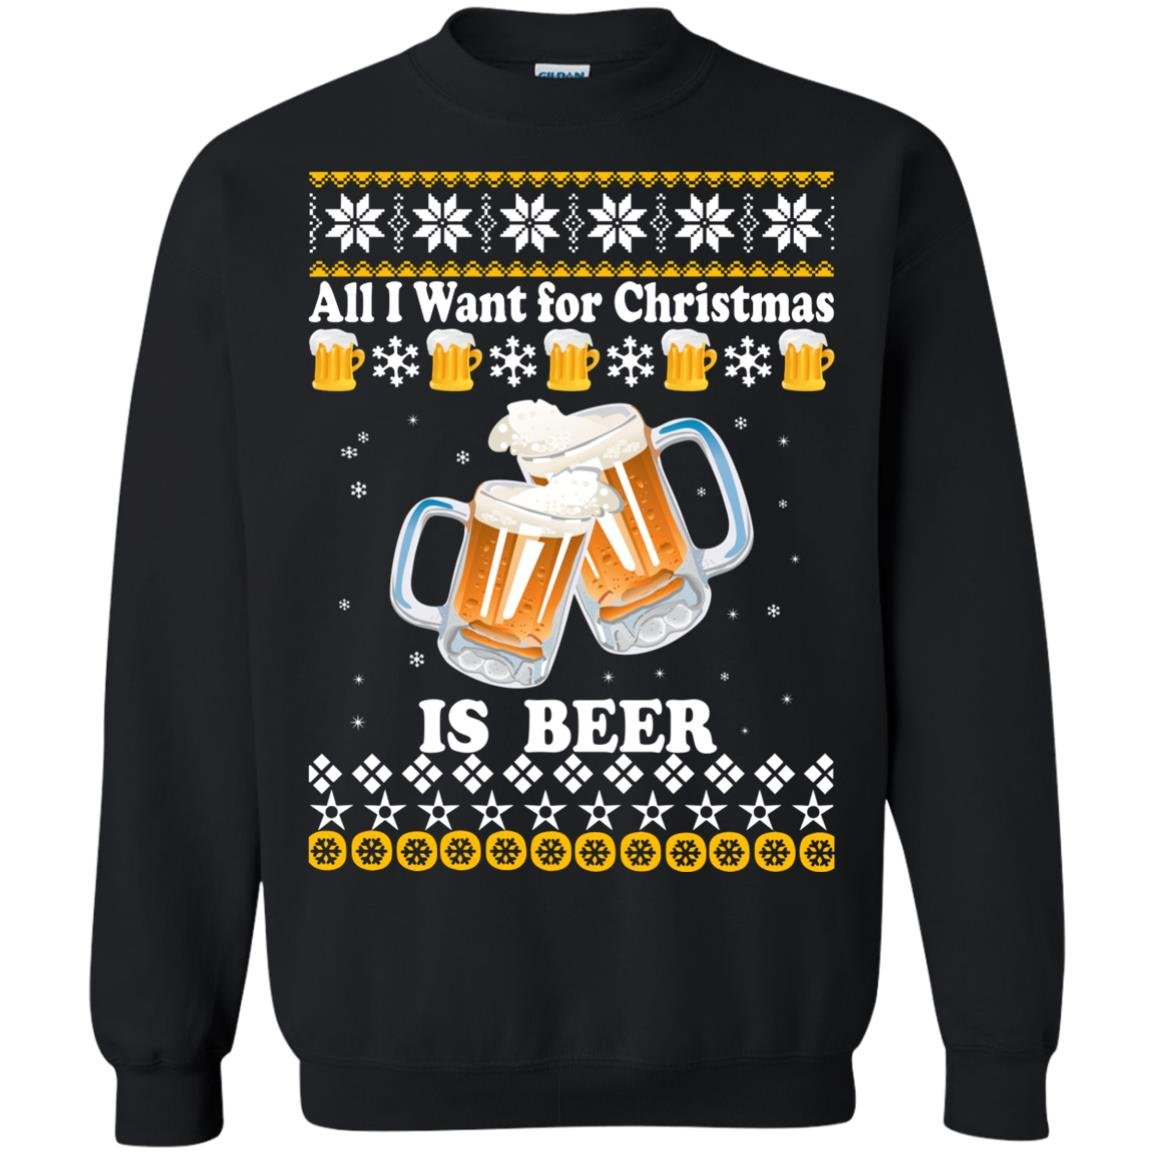 image 3043 - All I Want For Christmas Is Beer Sweater, Ugly Sweatshirts